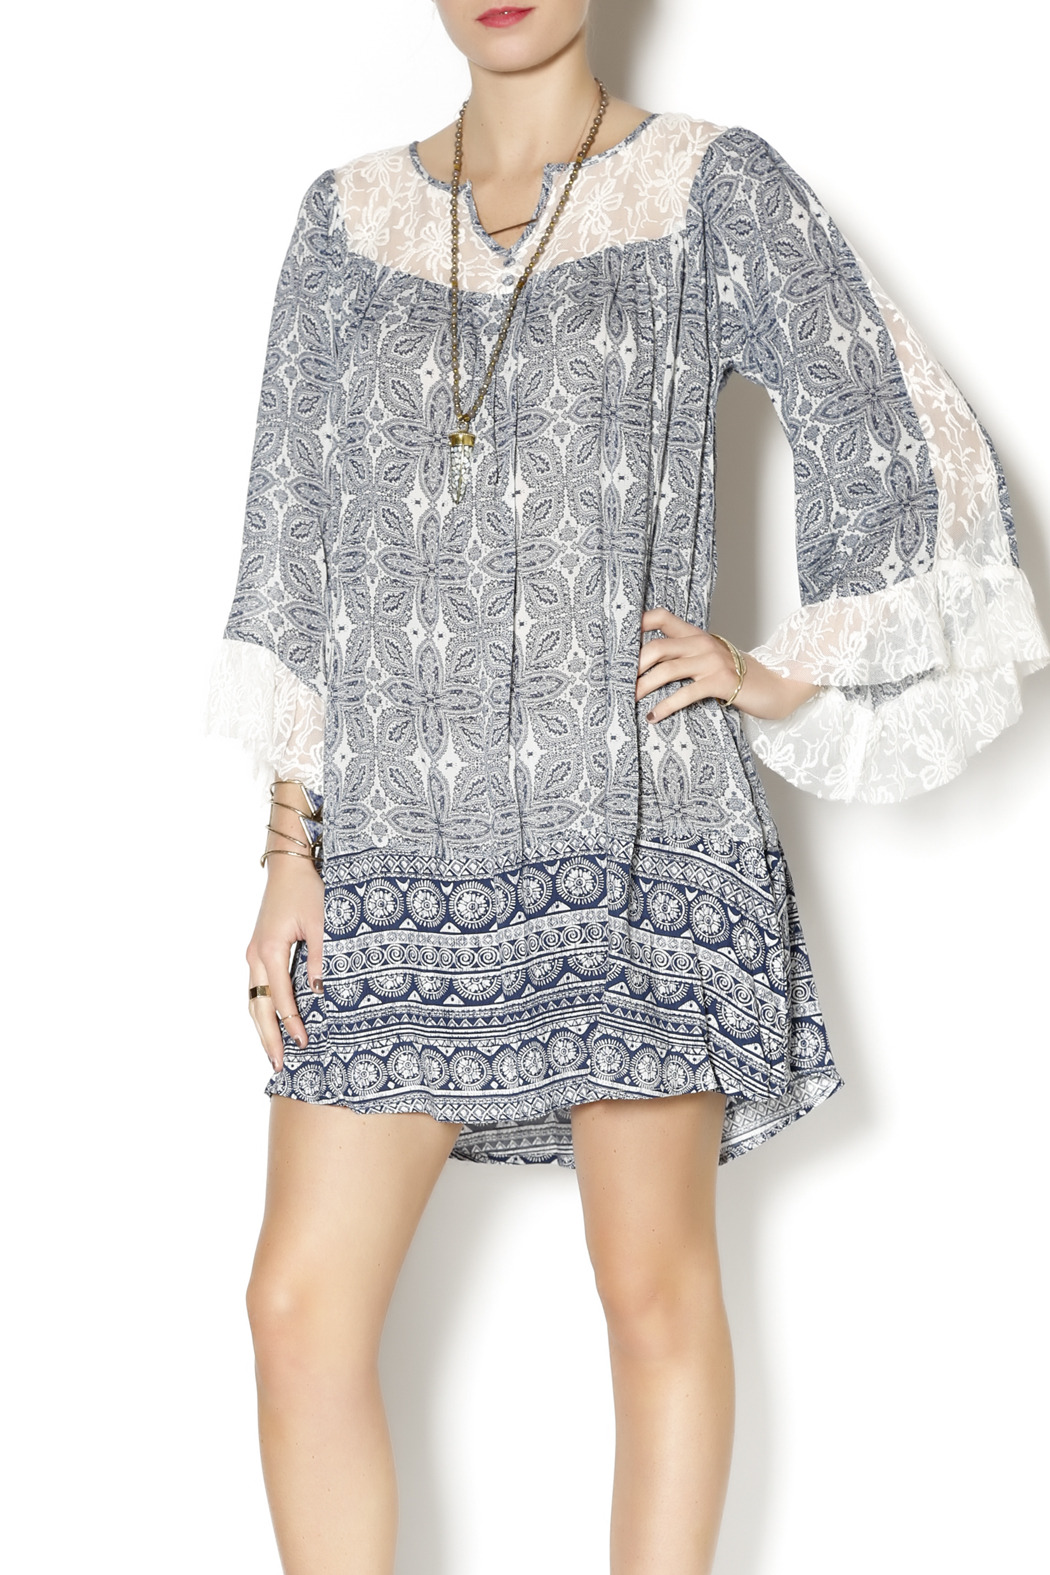 Umgee USA Blue Boho Dress - Main Image